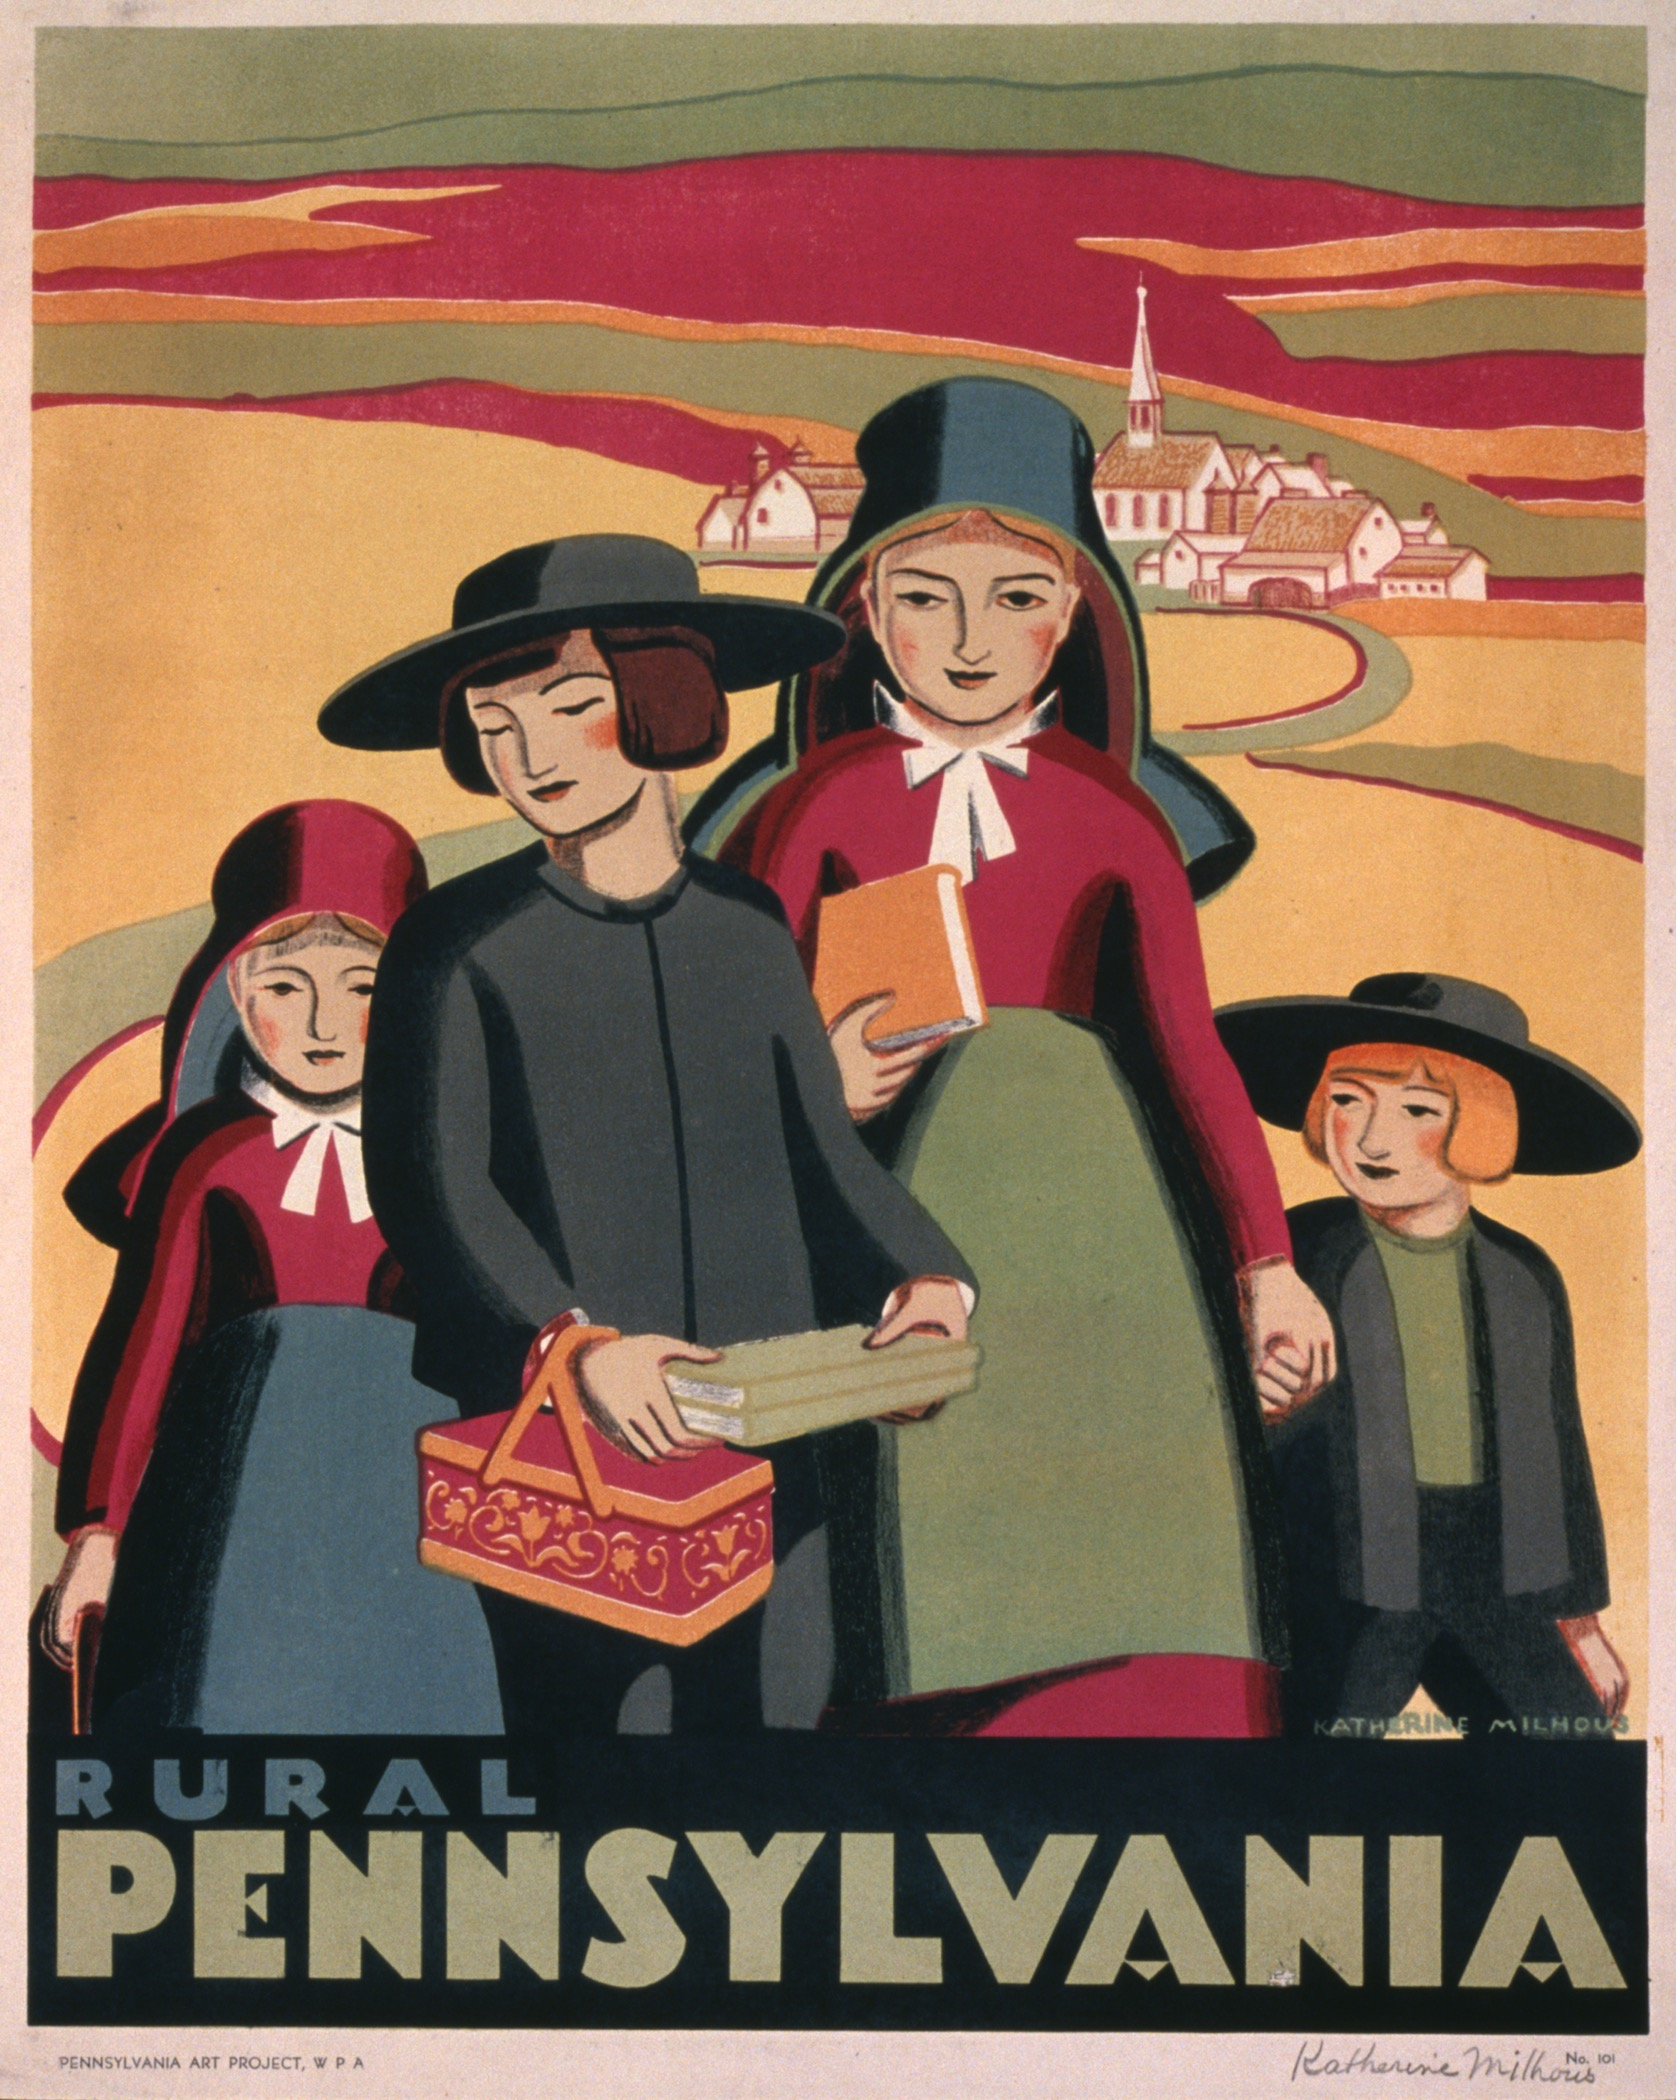 A WPA poster depicting an Amish family